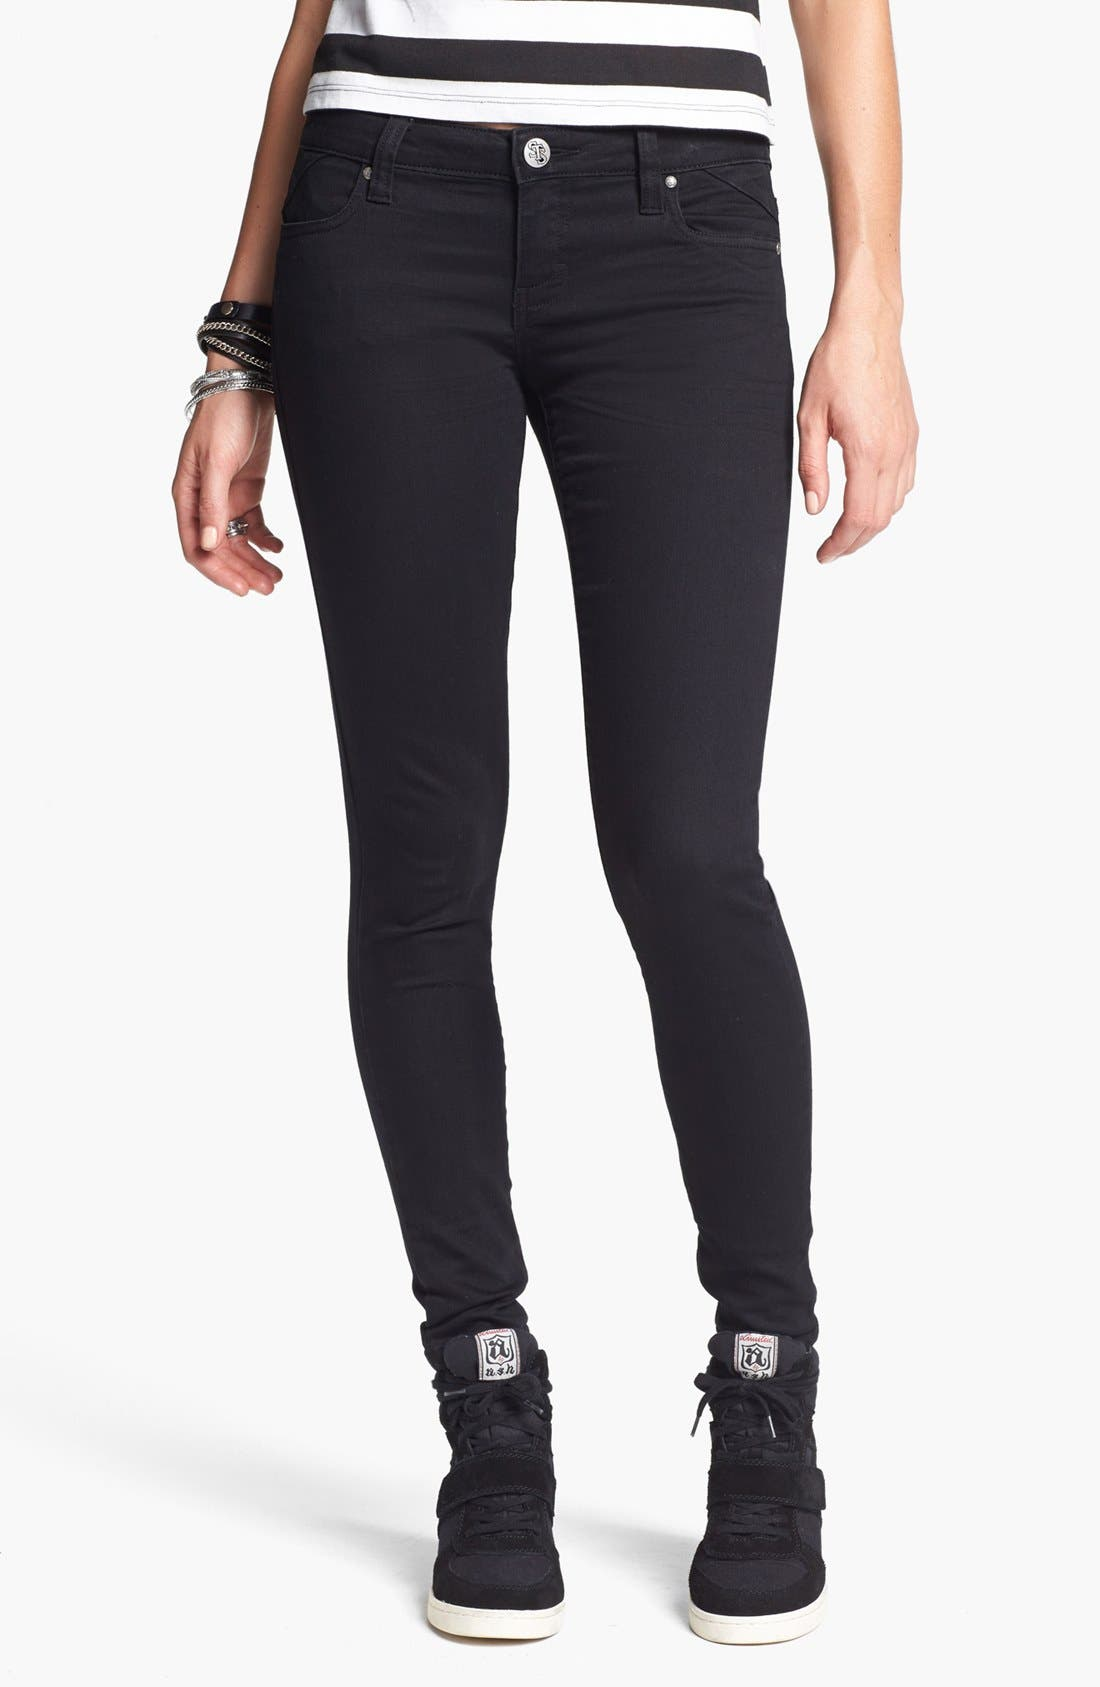 Alternate Image 1 Selected - STS Blue Skinny Jeans (Black) (Juniors)